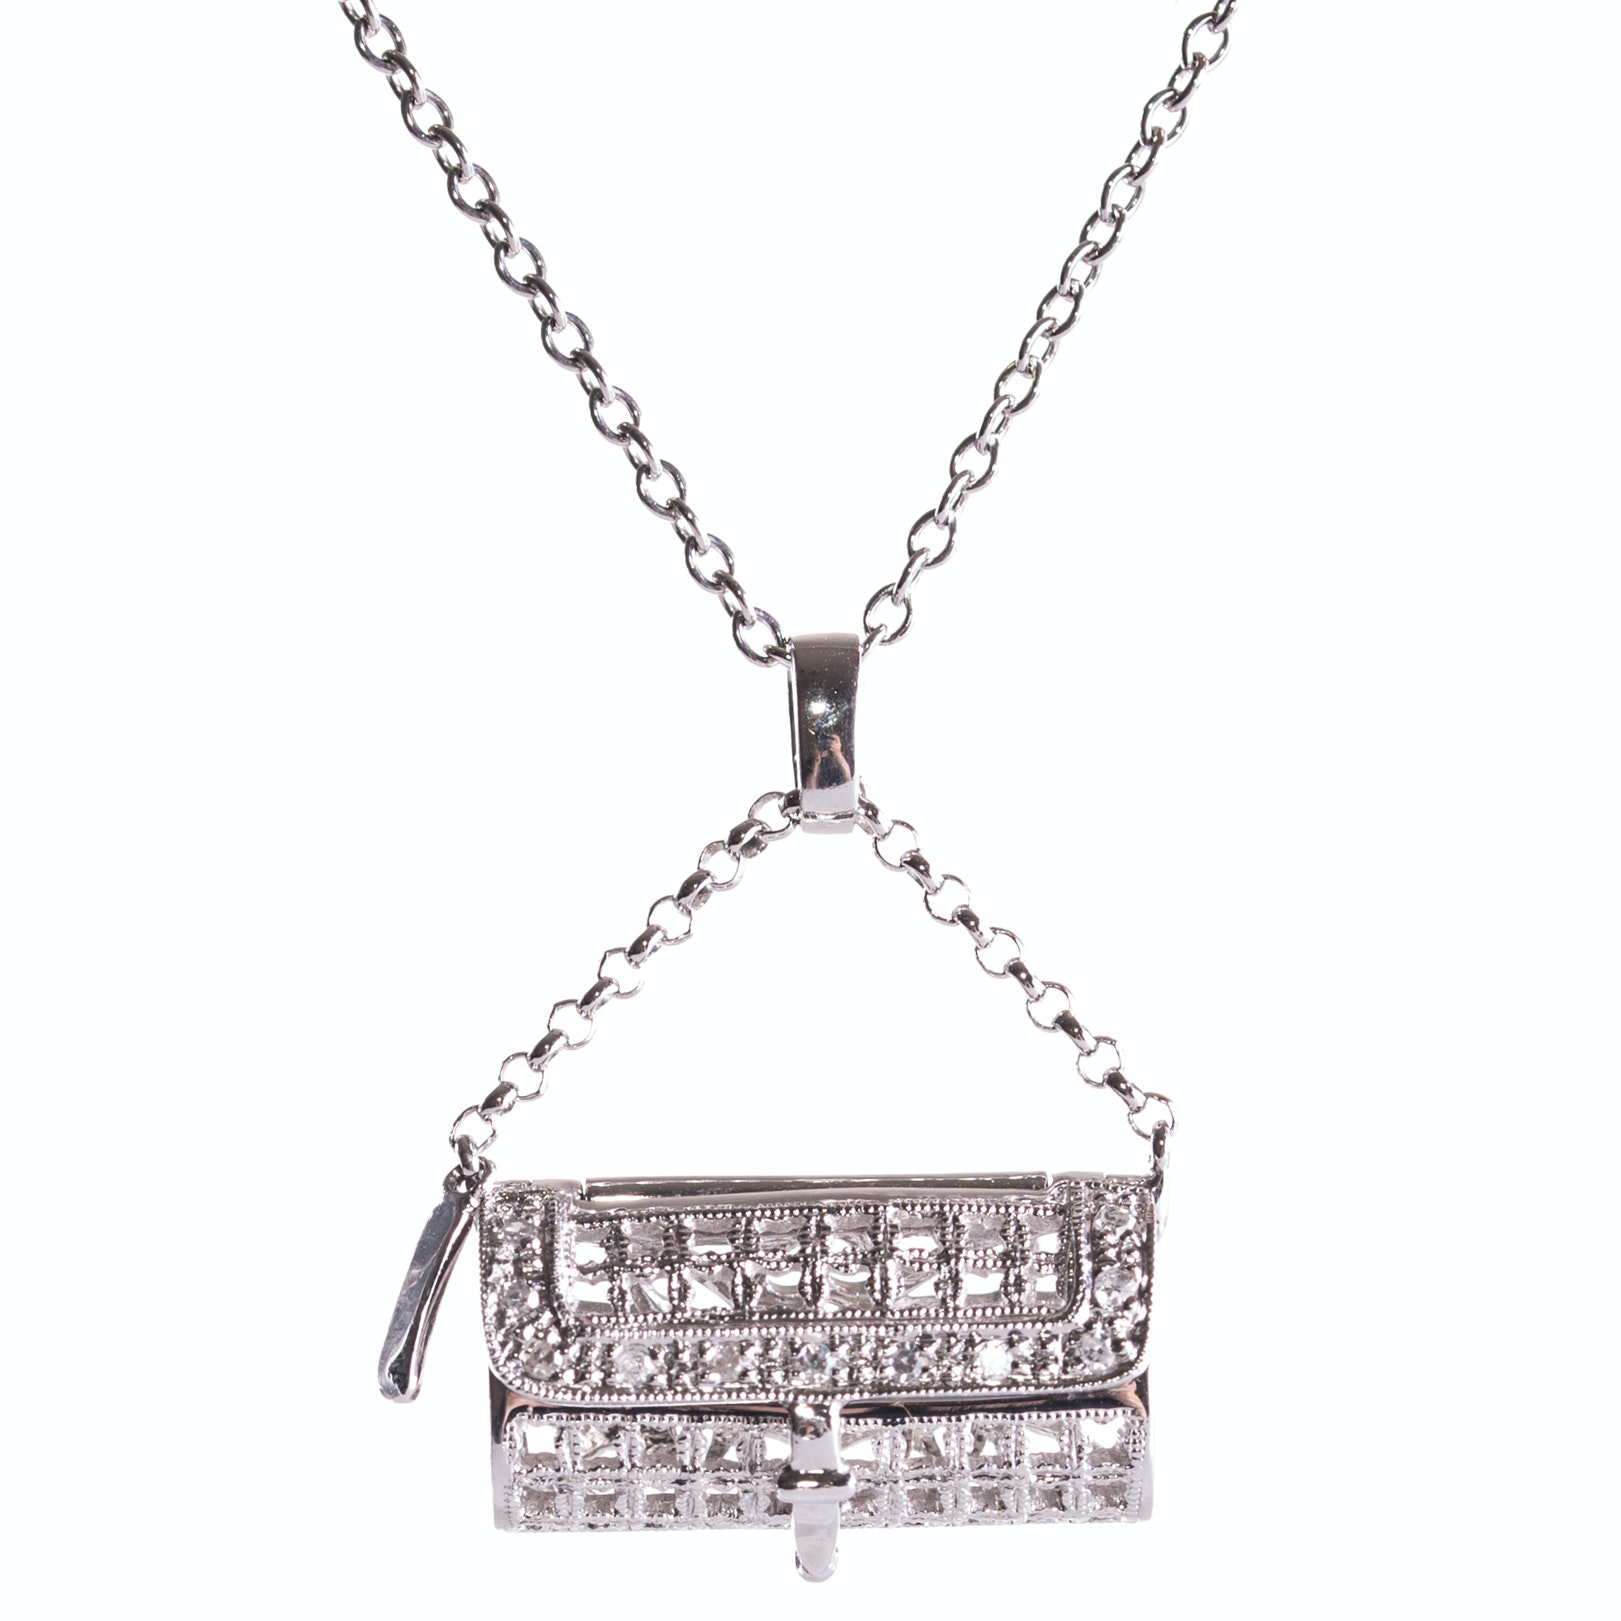 18K White Gold and Diamond Handbag Pendant Necklace